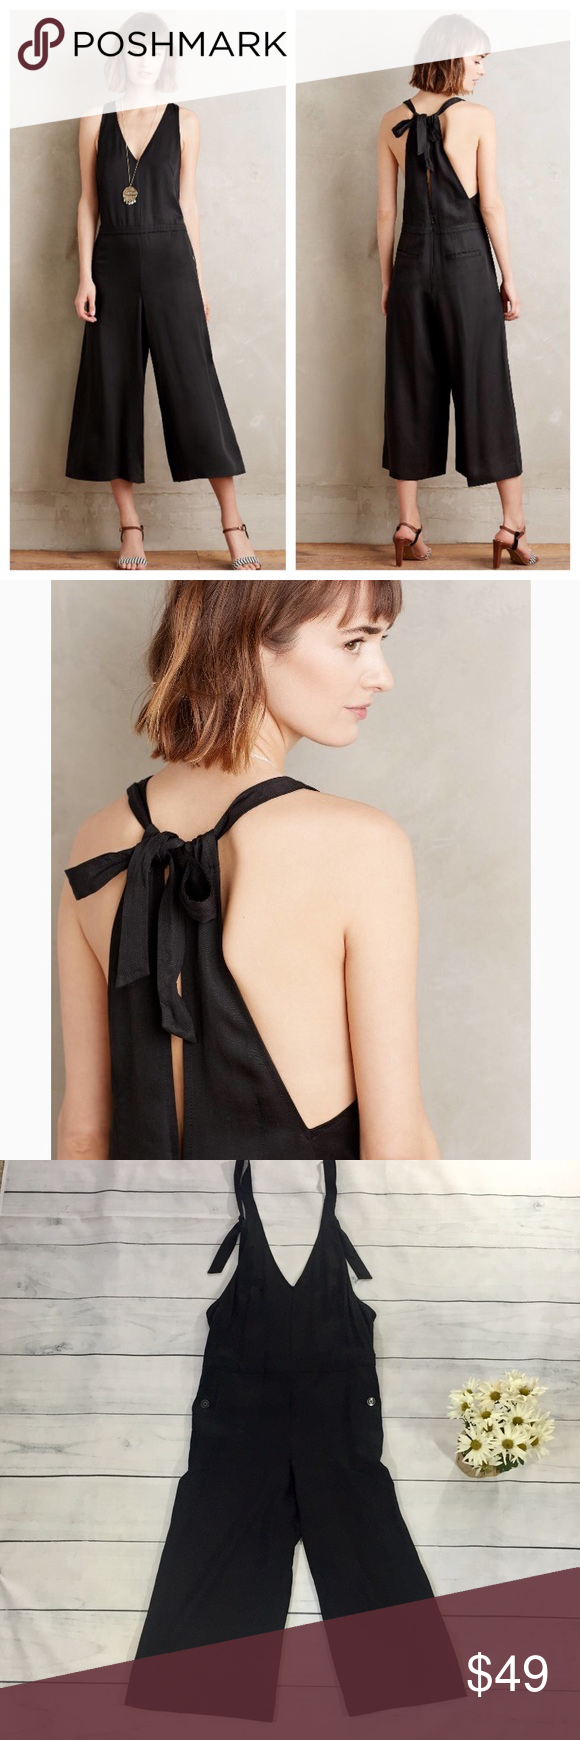 """012863ccffa8 Anthropologie """"Erinna Culotte Jumpsuit"""" Super comfortable and cute jumpsuit  from Anthropologie. This black"""